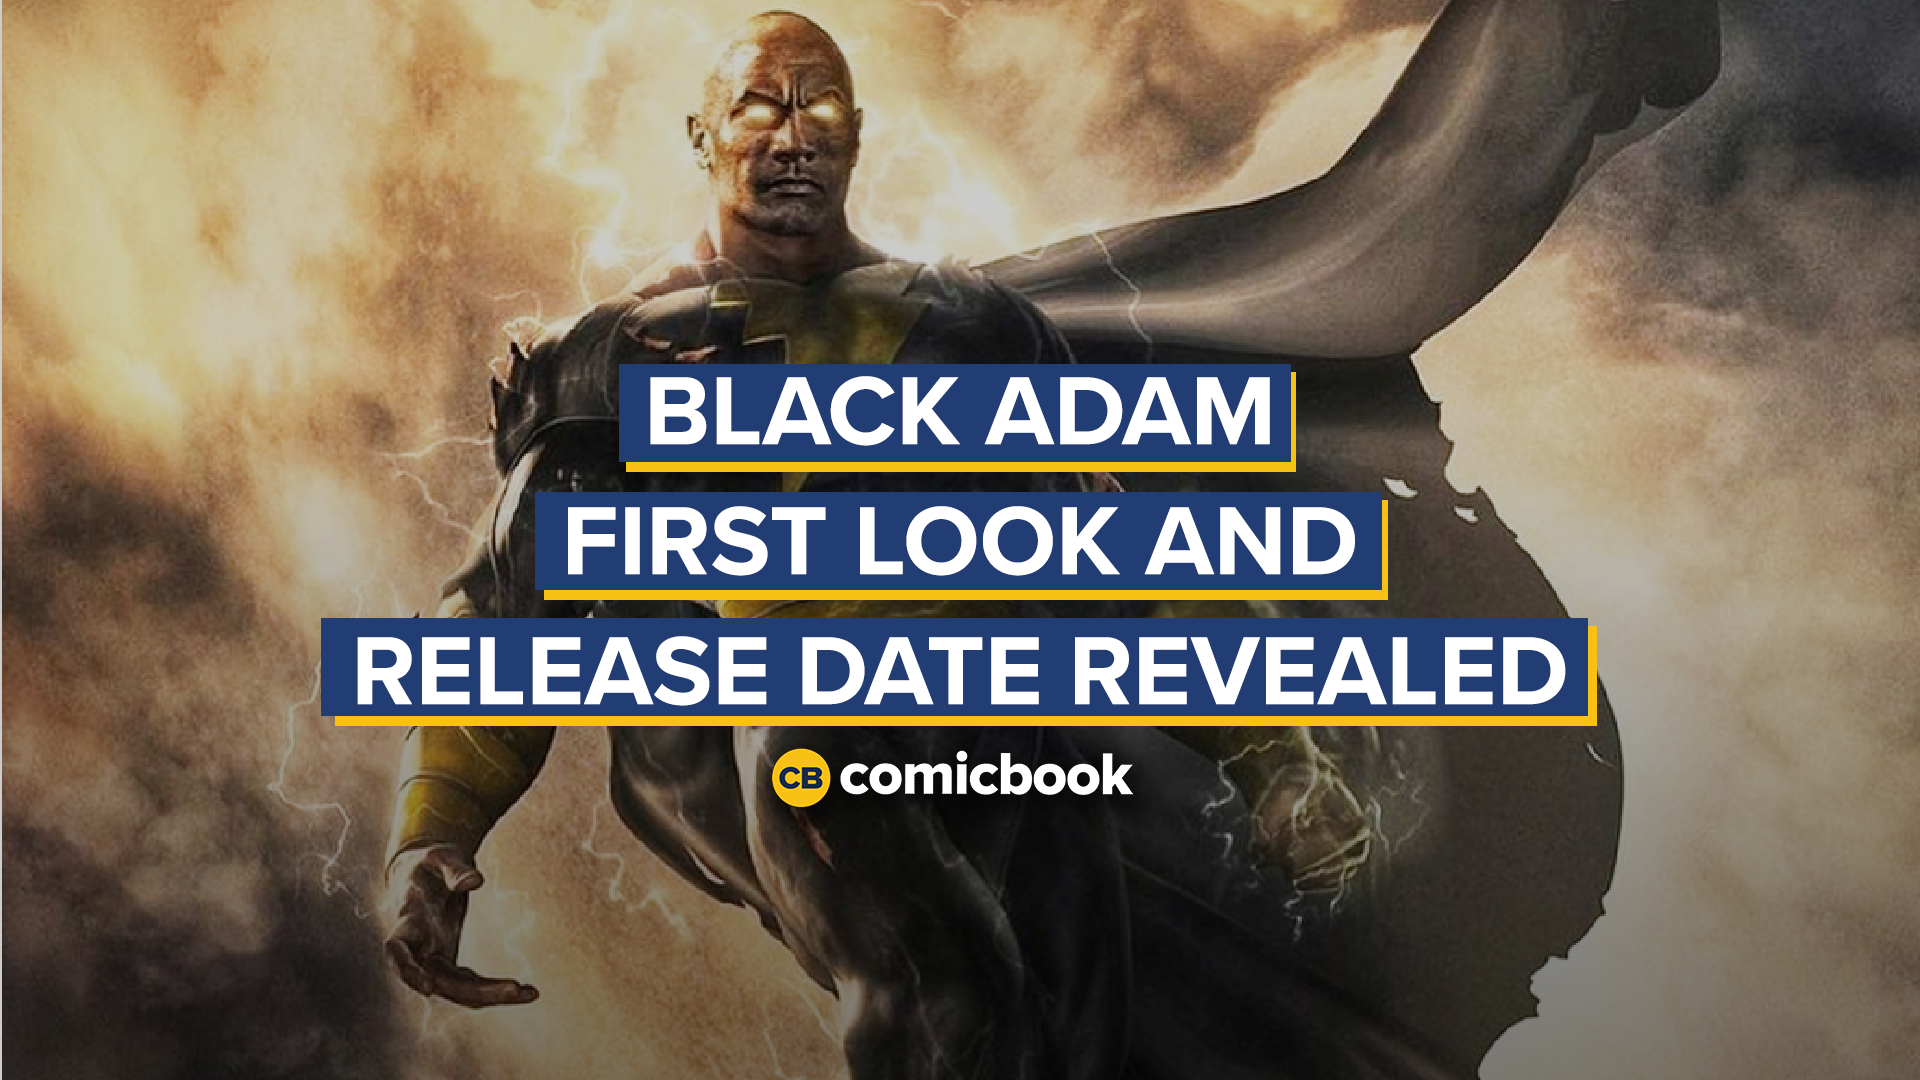 Black Adam First Look and Release Date Revealed screen capture